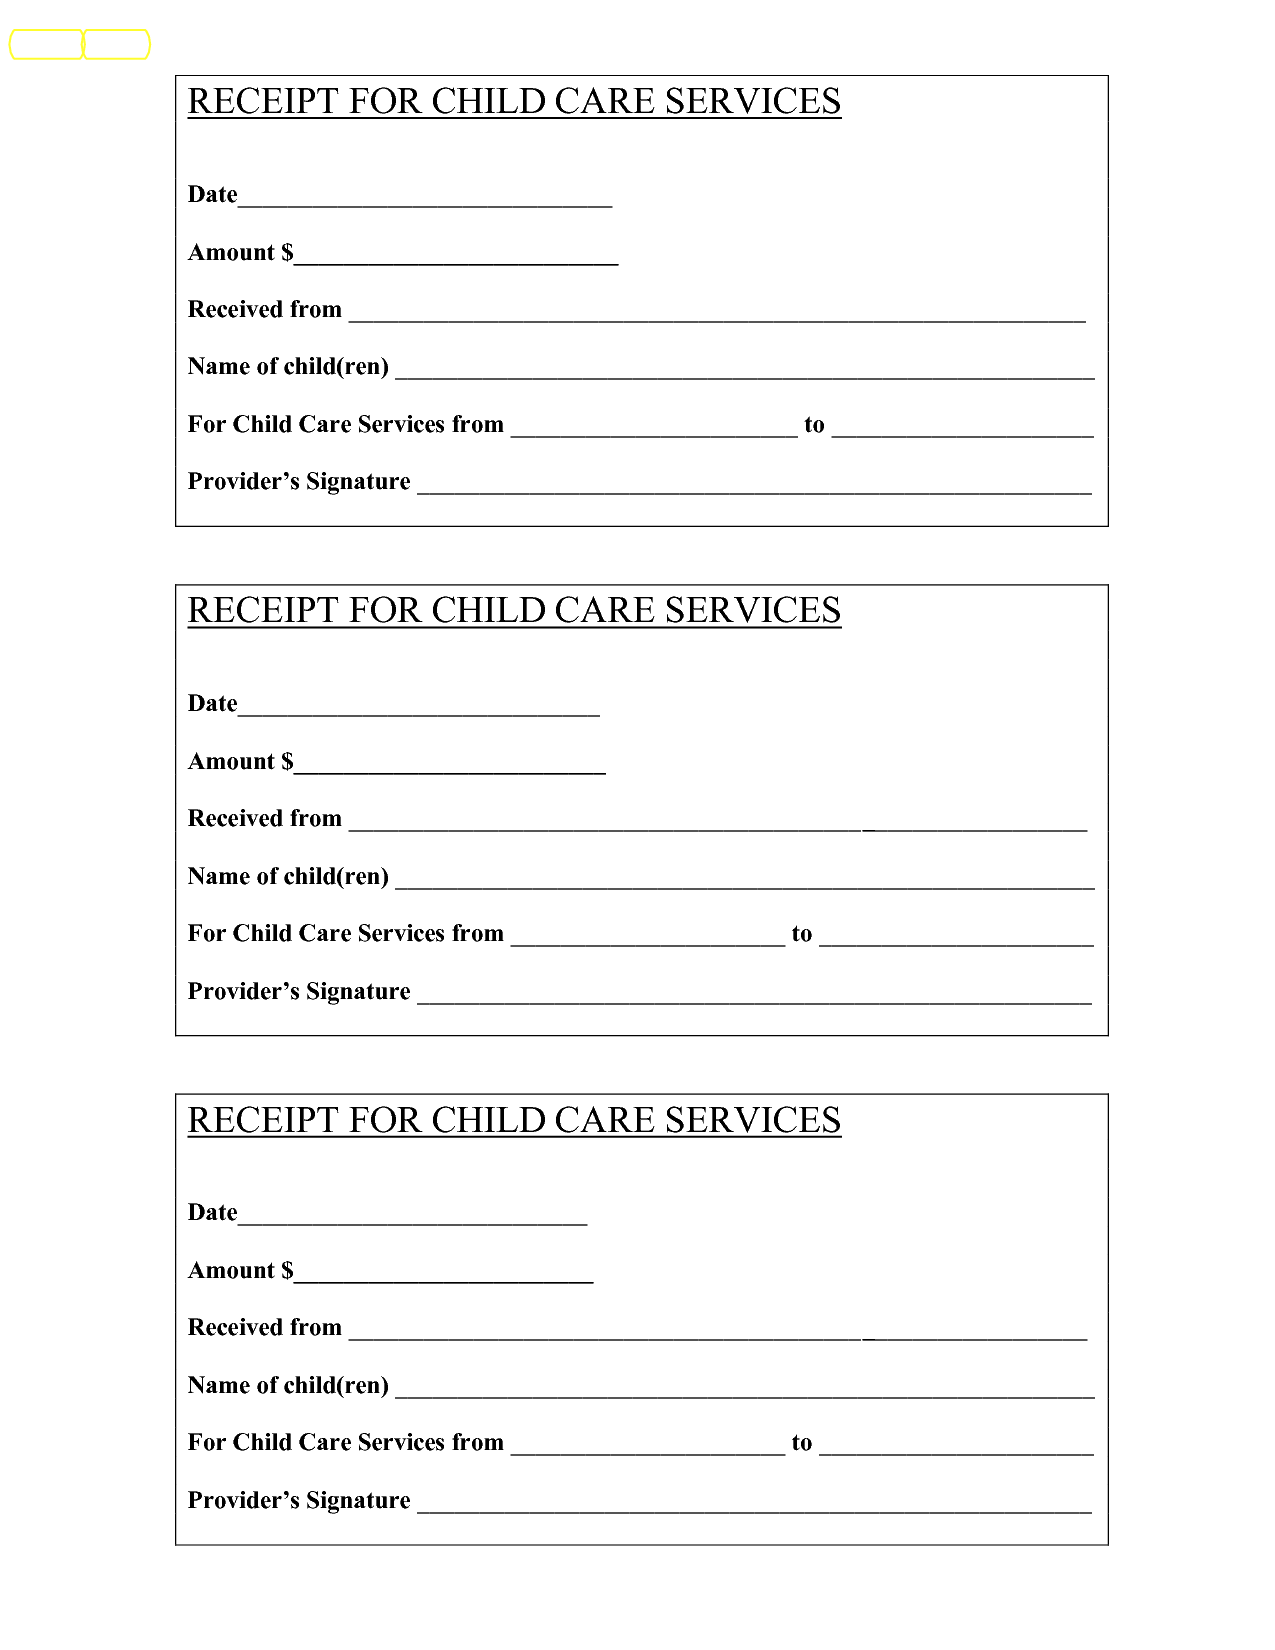 Pin By Cindy Brooks On My Saves In 2021 Child Care Services Childcare Daycare Forms